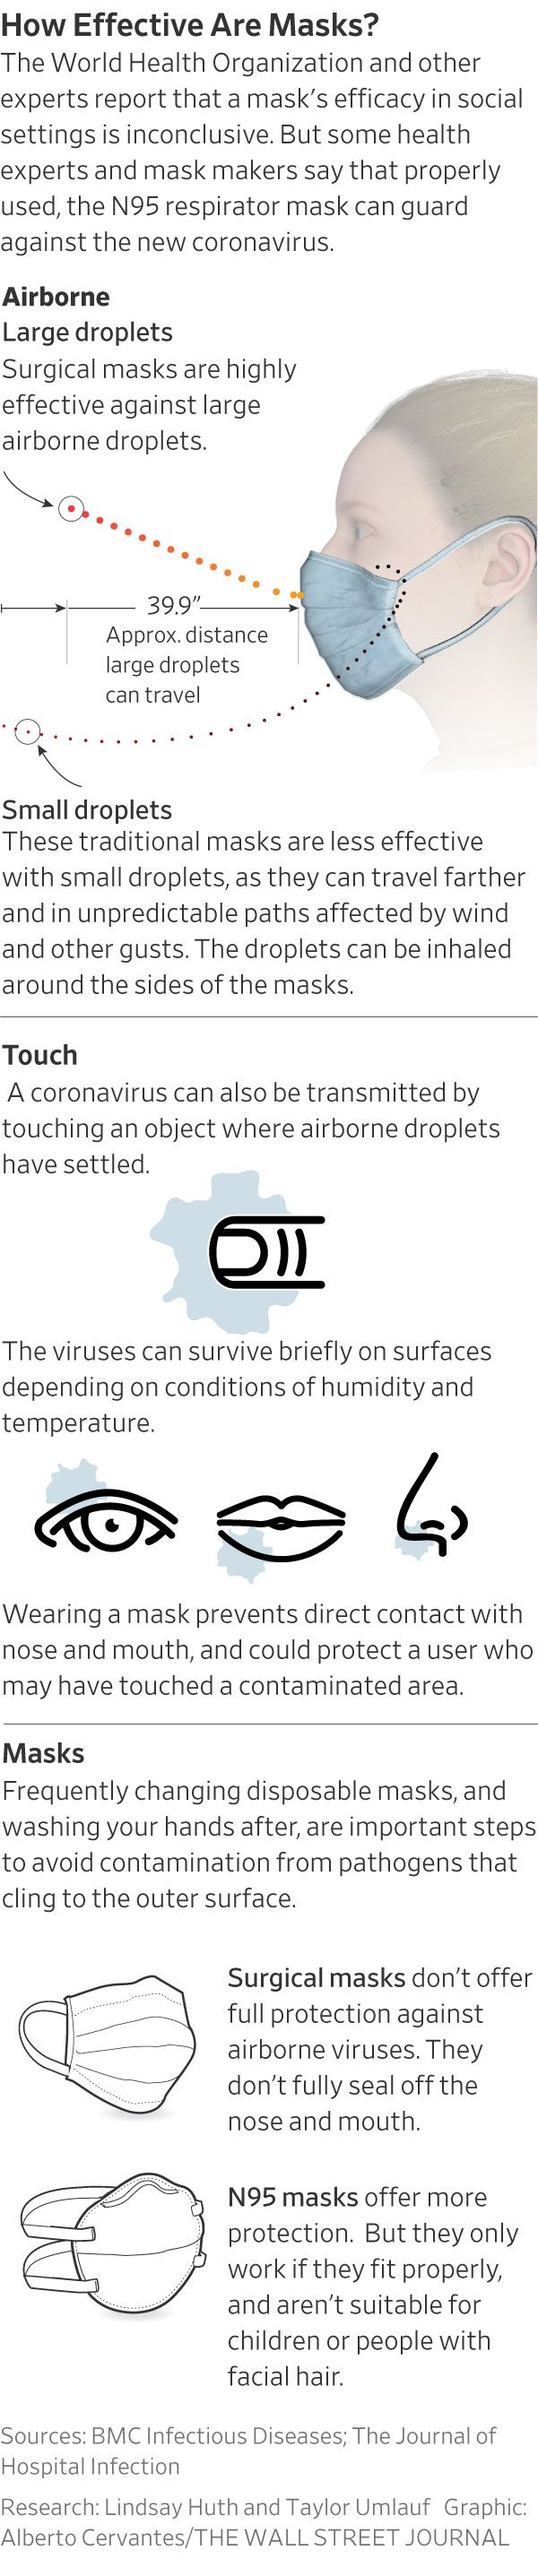 Coronavirus Symptoms and How to Protect Yourself: What We Know - WSJ